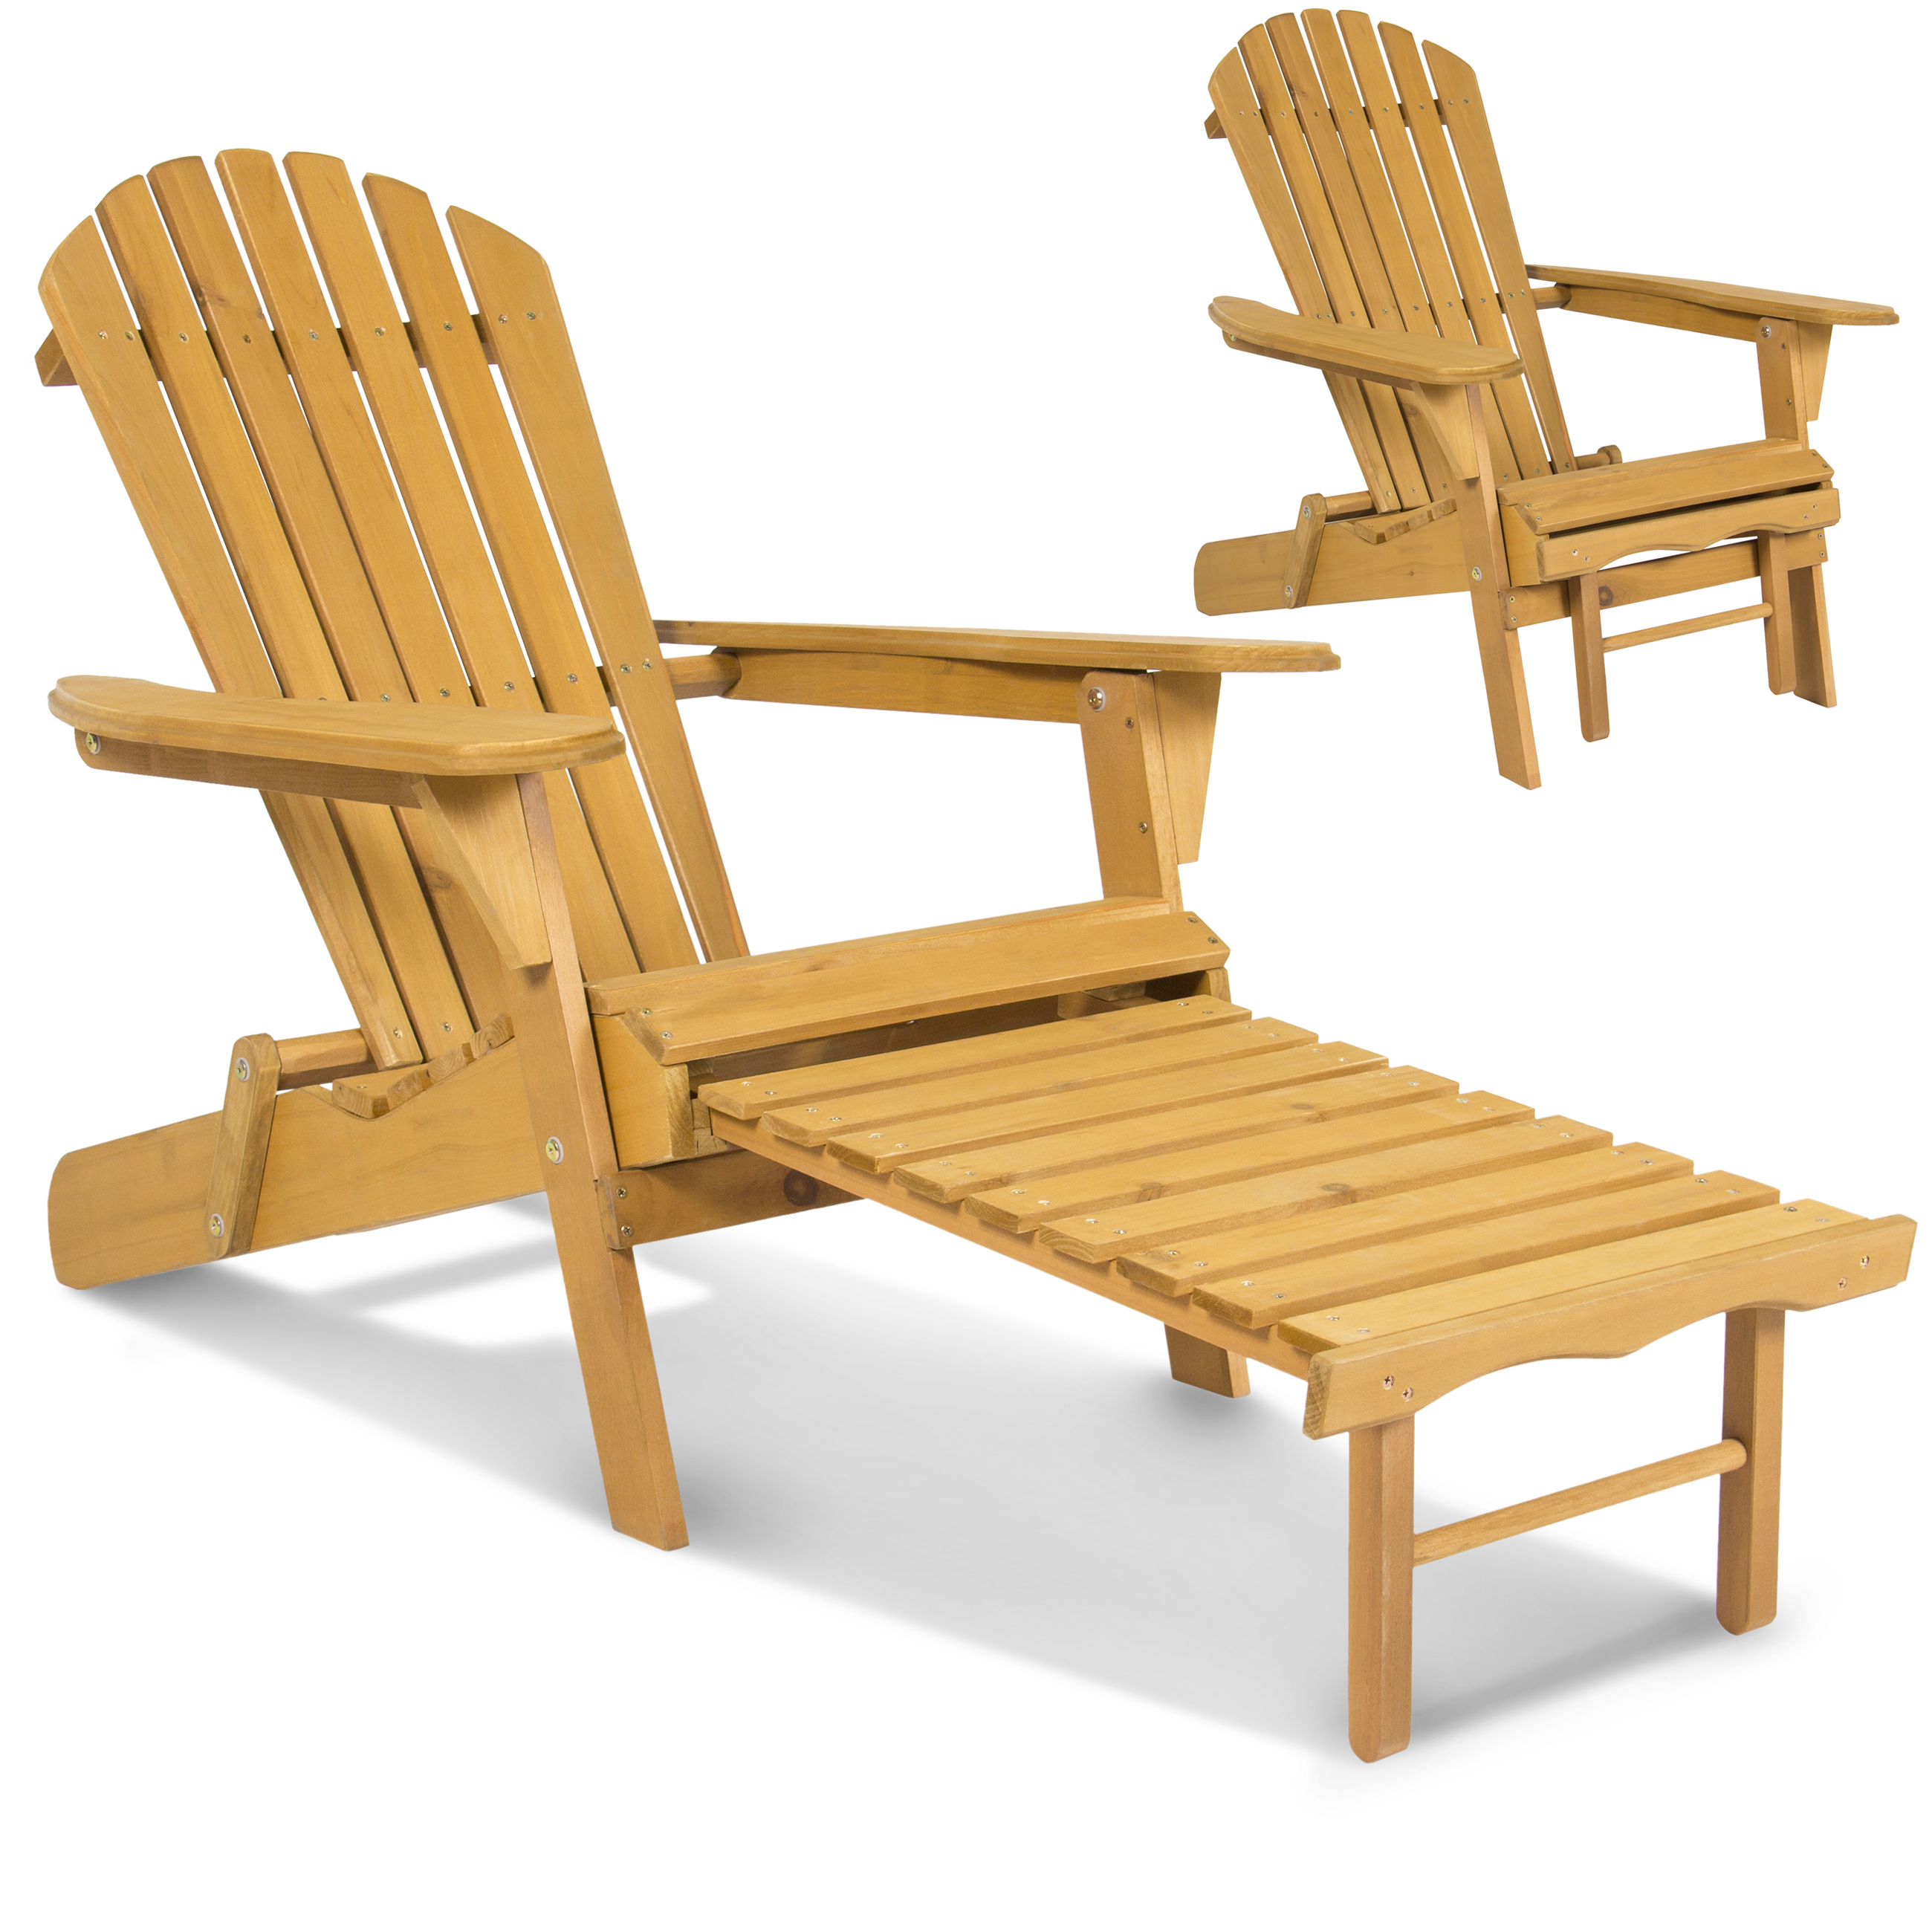 Best Choice Products Outdoor Wood Adirondack Chair Foldable w/ Pull Out Ottoman Patio Deck Furniture - Walmart.com  sc 1 st  Walmart & Best Choice Products Outdoor Wood Adirondack Chair Foldable w/ Pull ...